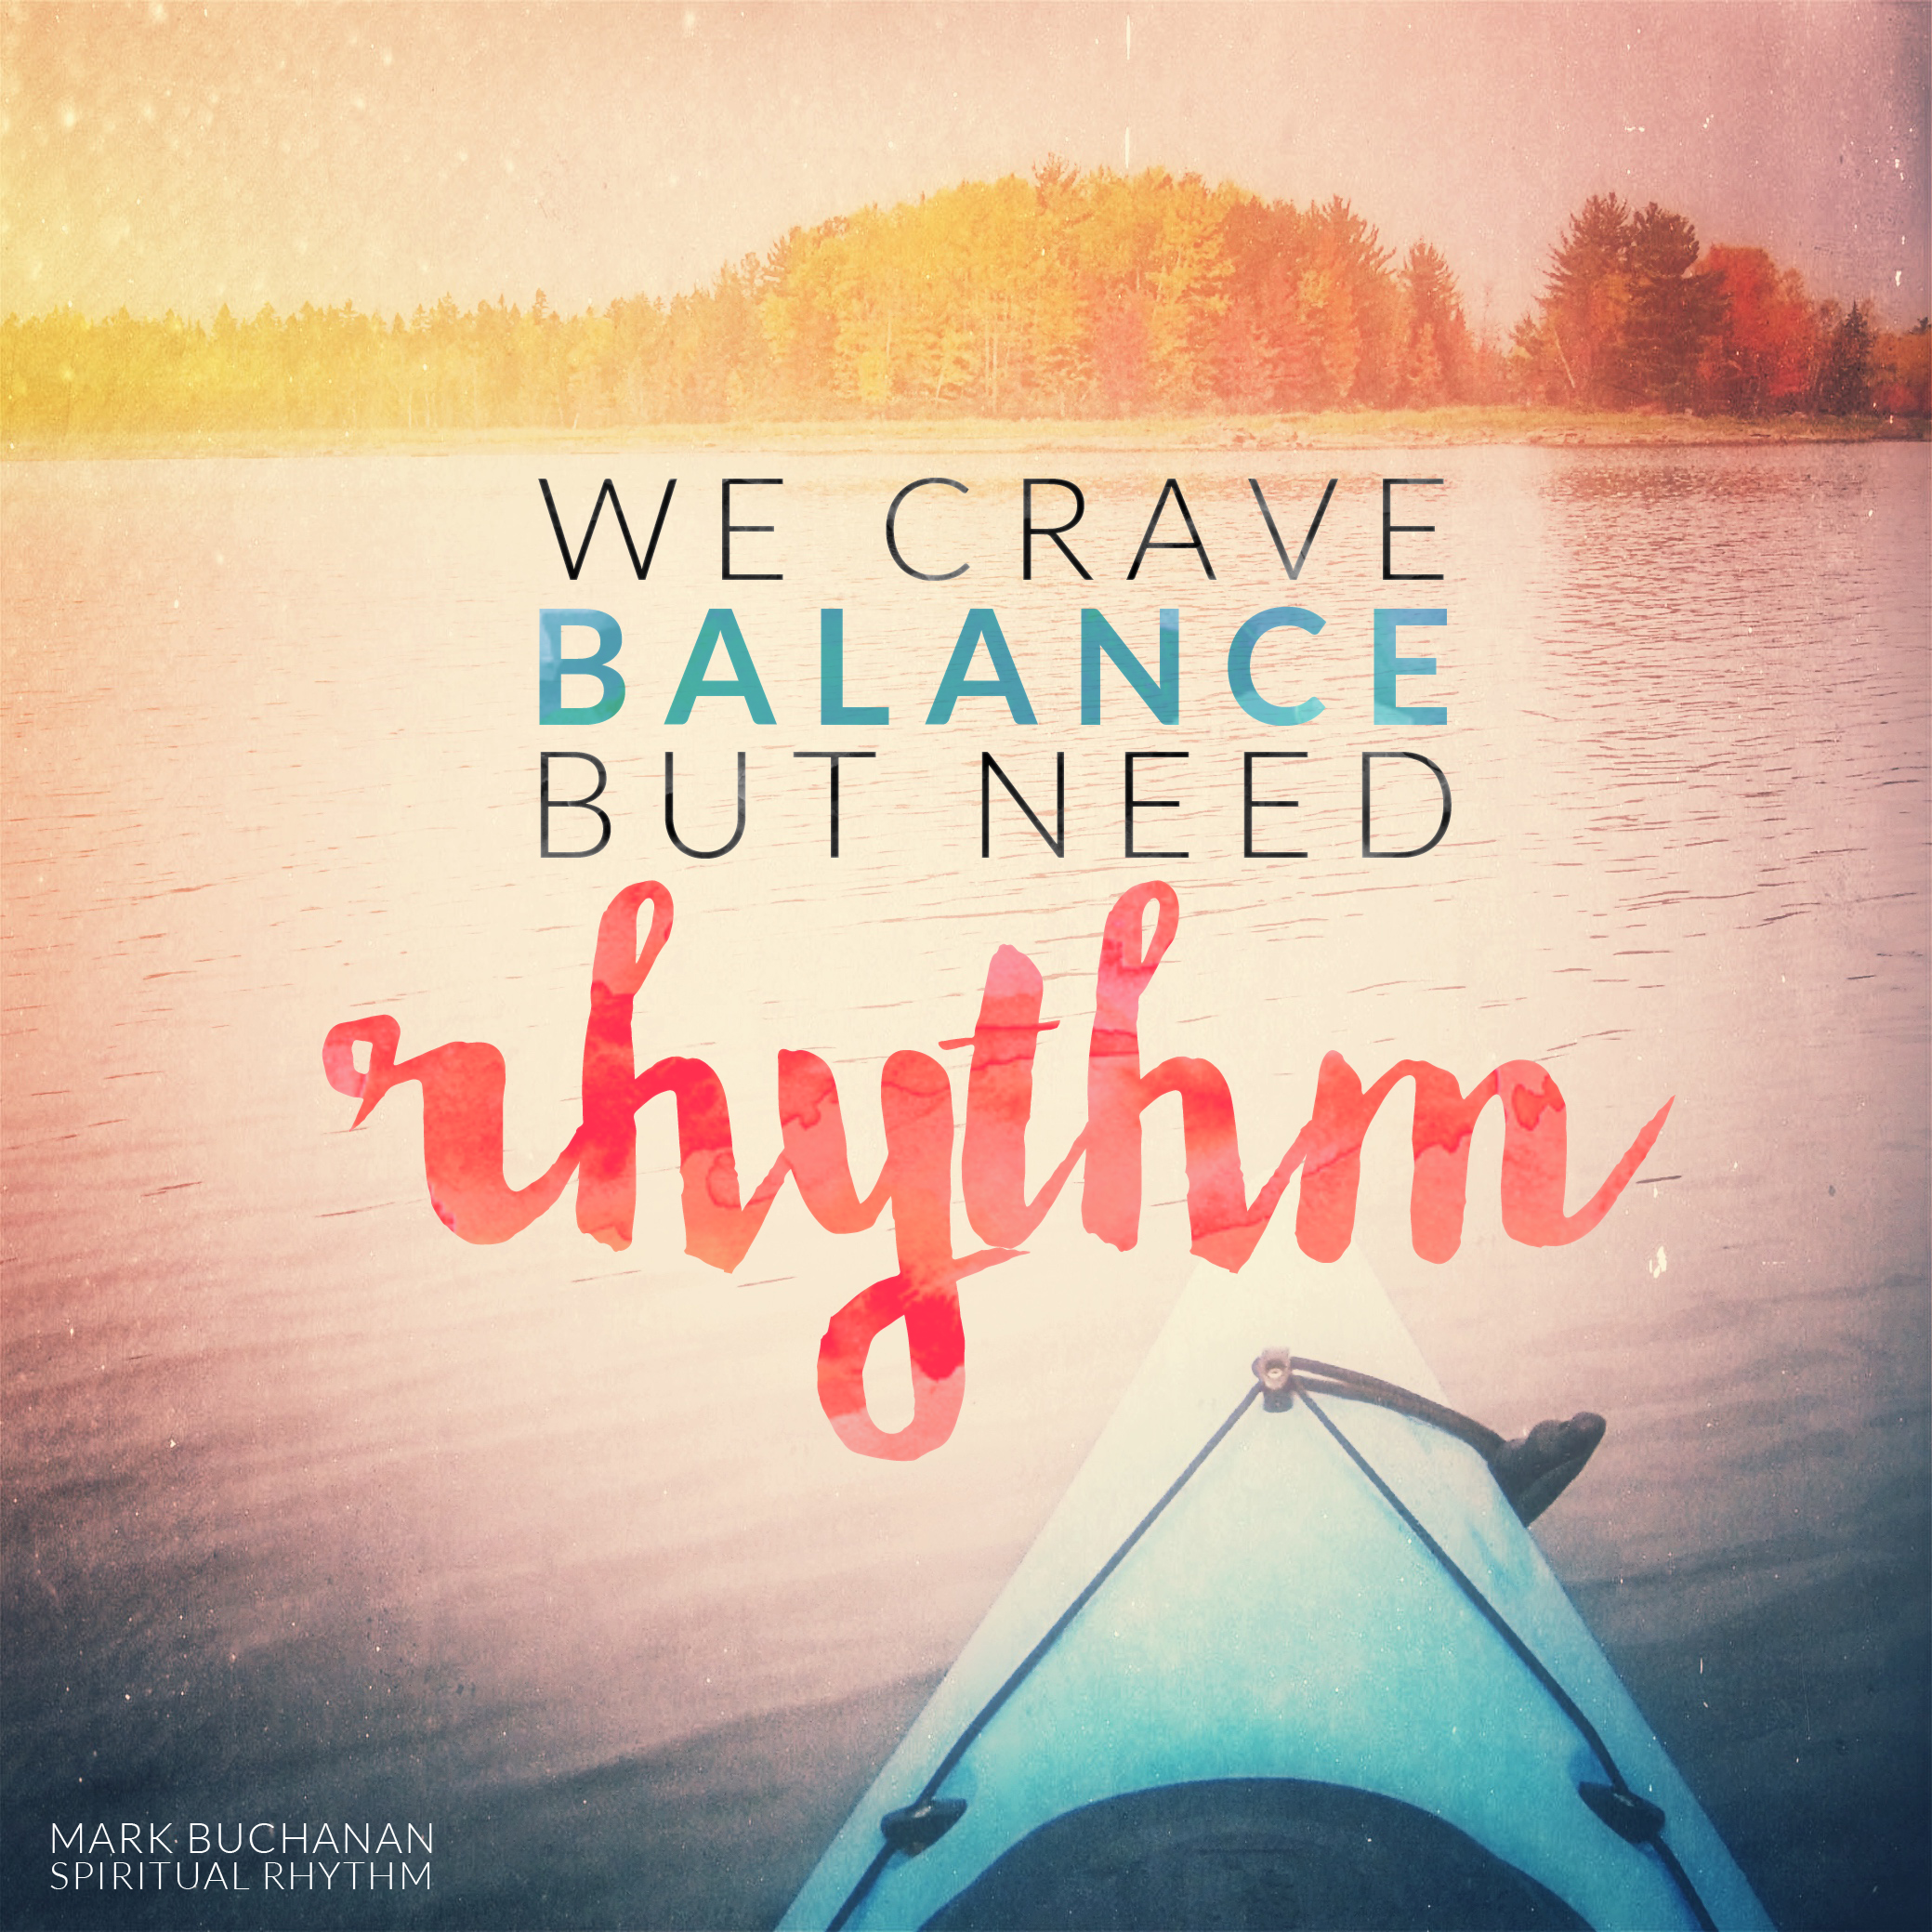 """We crave balance but need rhythm"" Mark Buchanan"